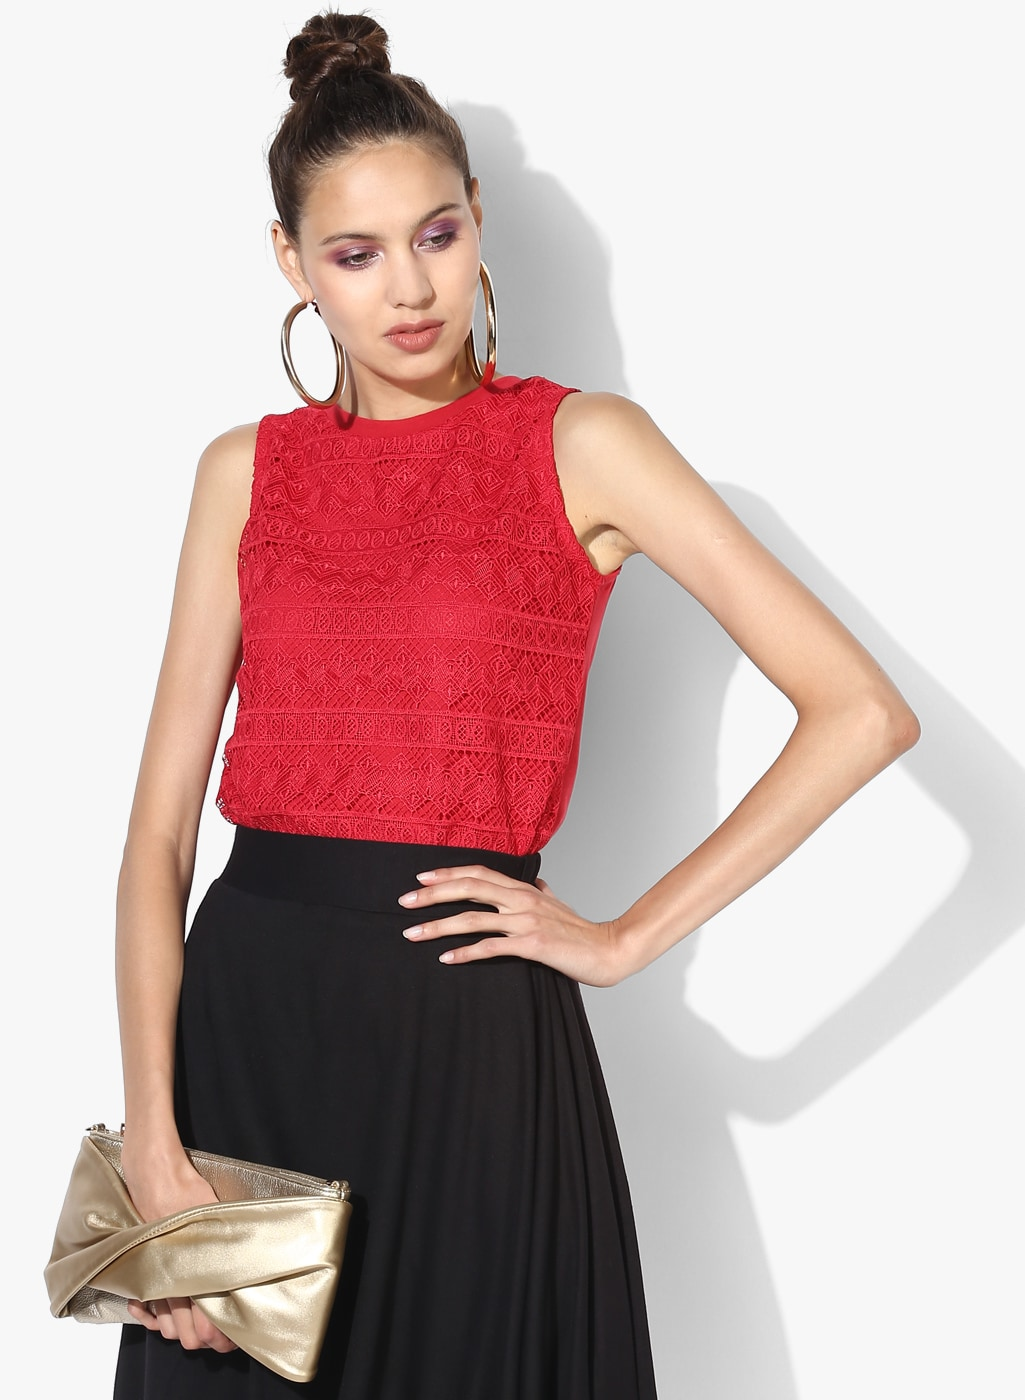 d6ca295d59 Red Top - Buy Red Tops Online at Best Price in India